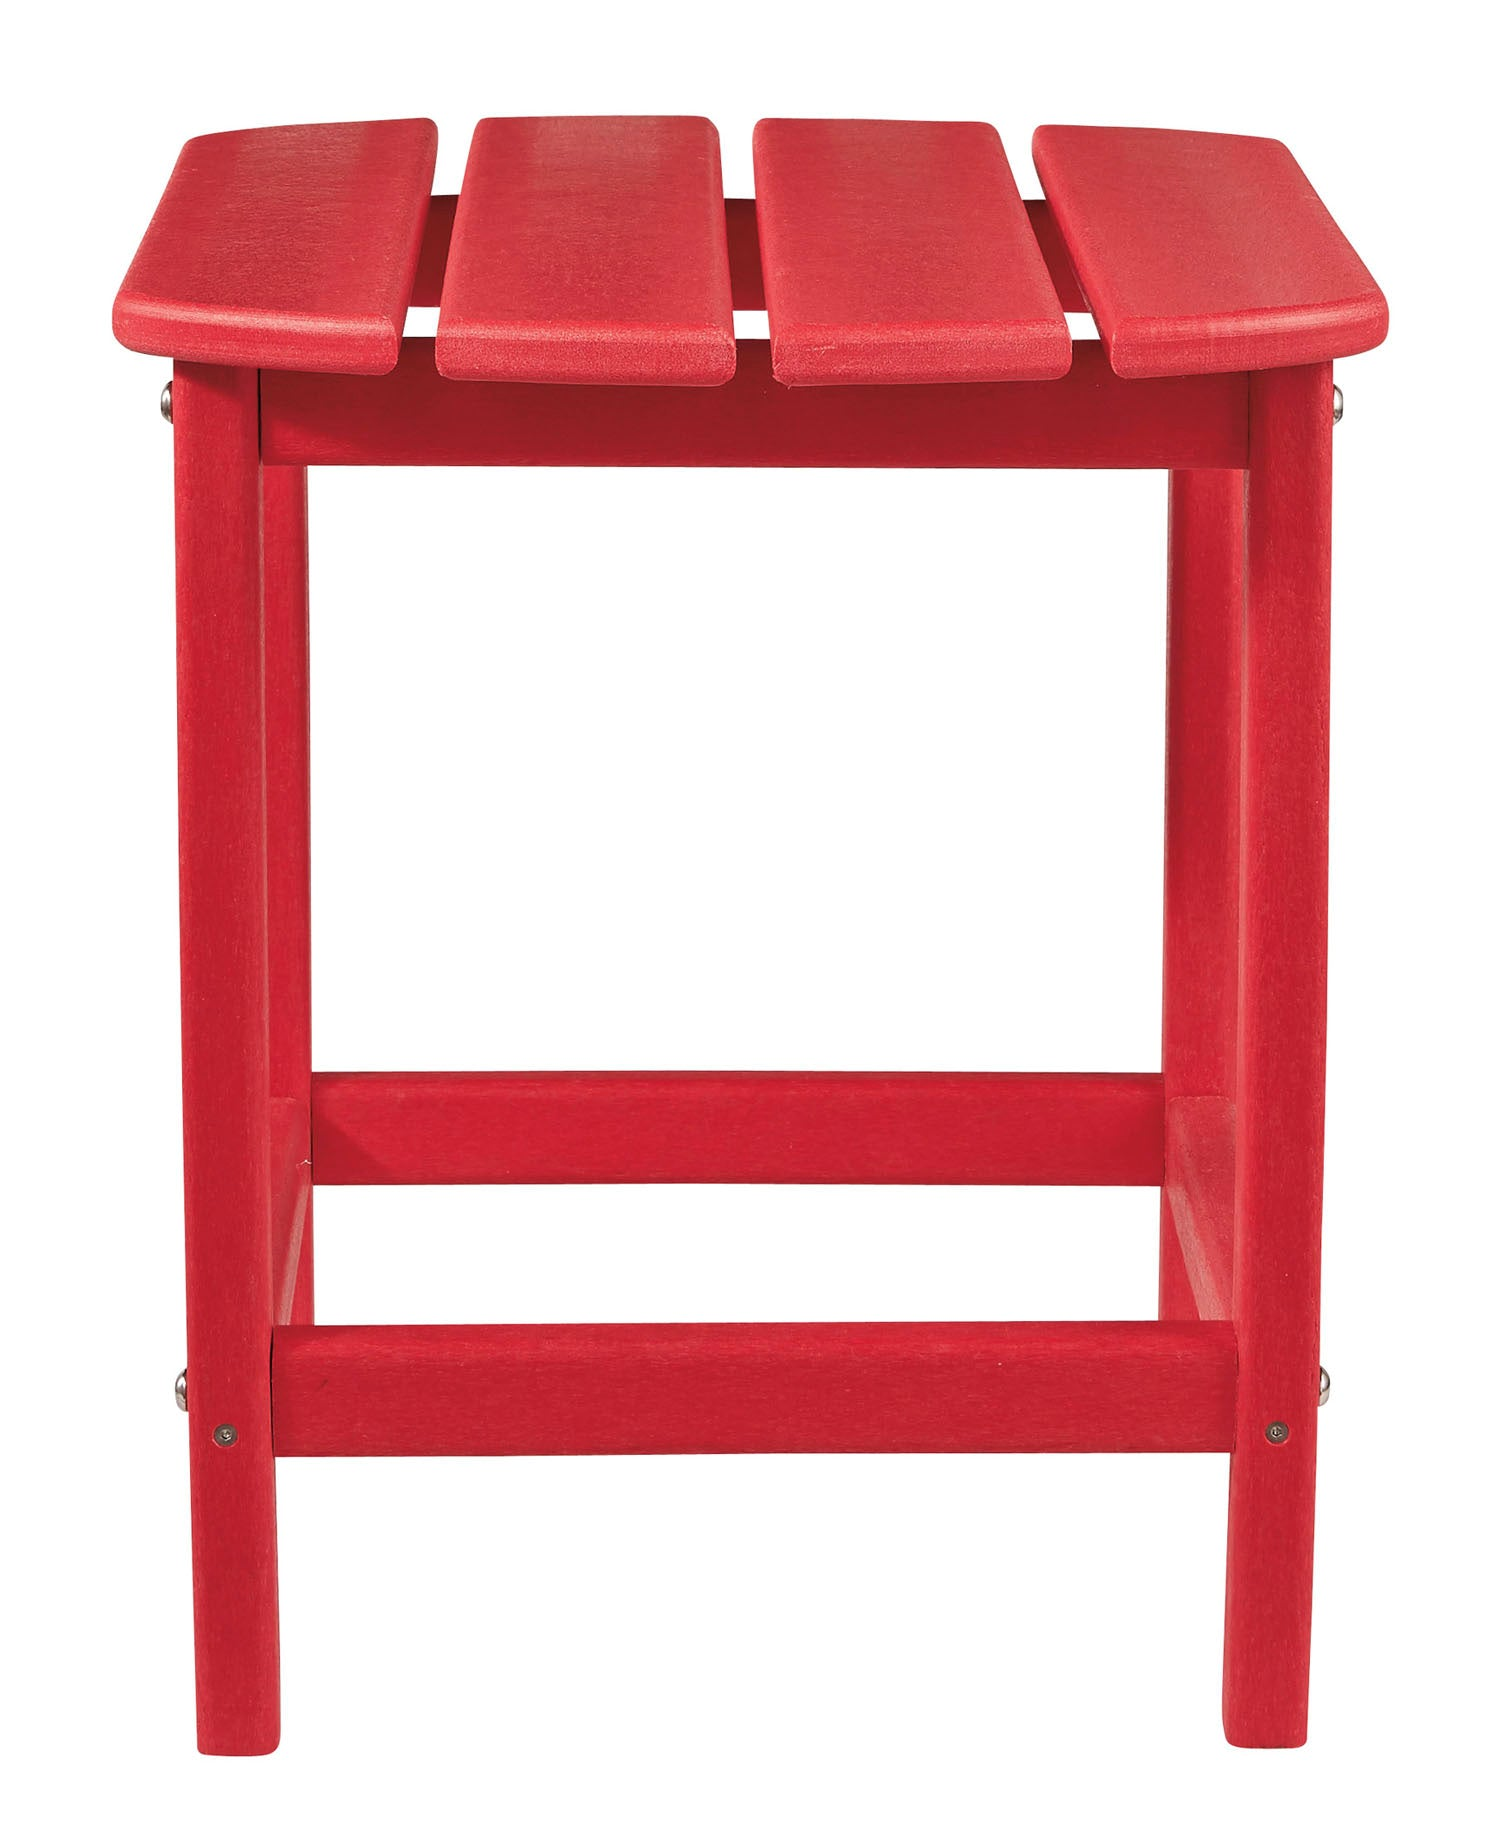 Sundown Treasure Red Outdoor End Table - MJM Furniture